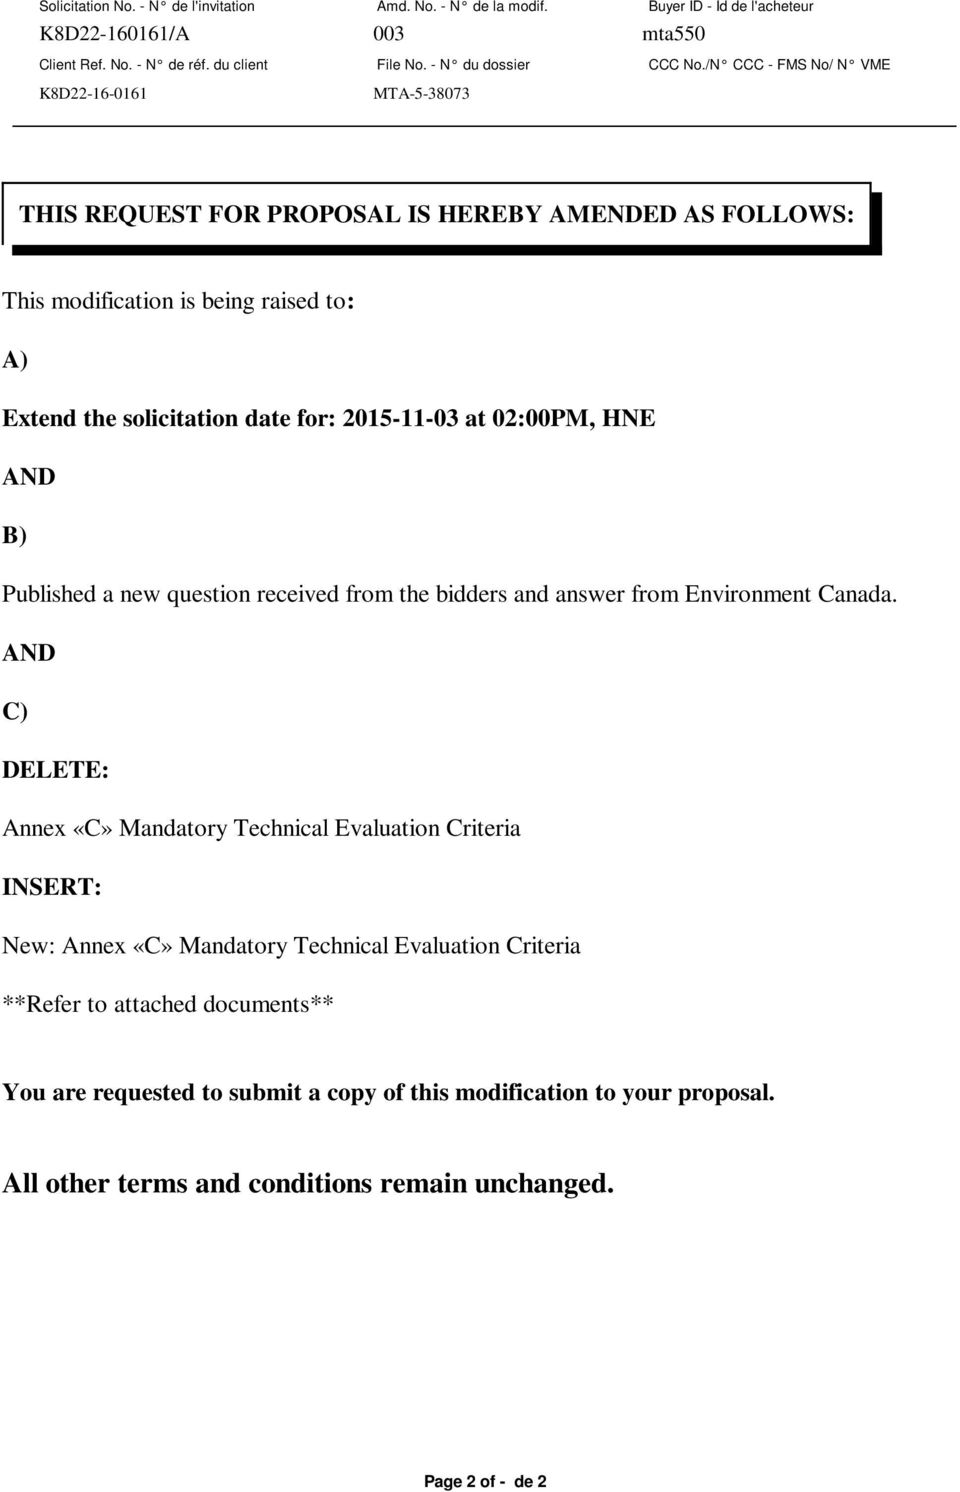 02:00PM, HNE AND B) Published a new question received from the bidders and answer from Environment Canada.